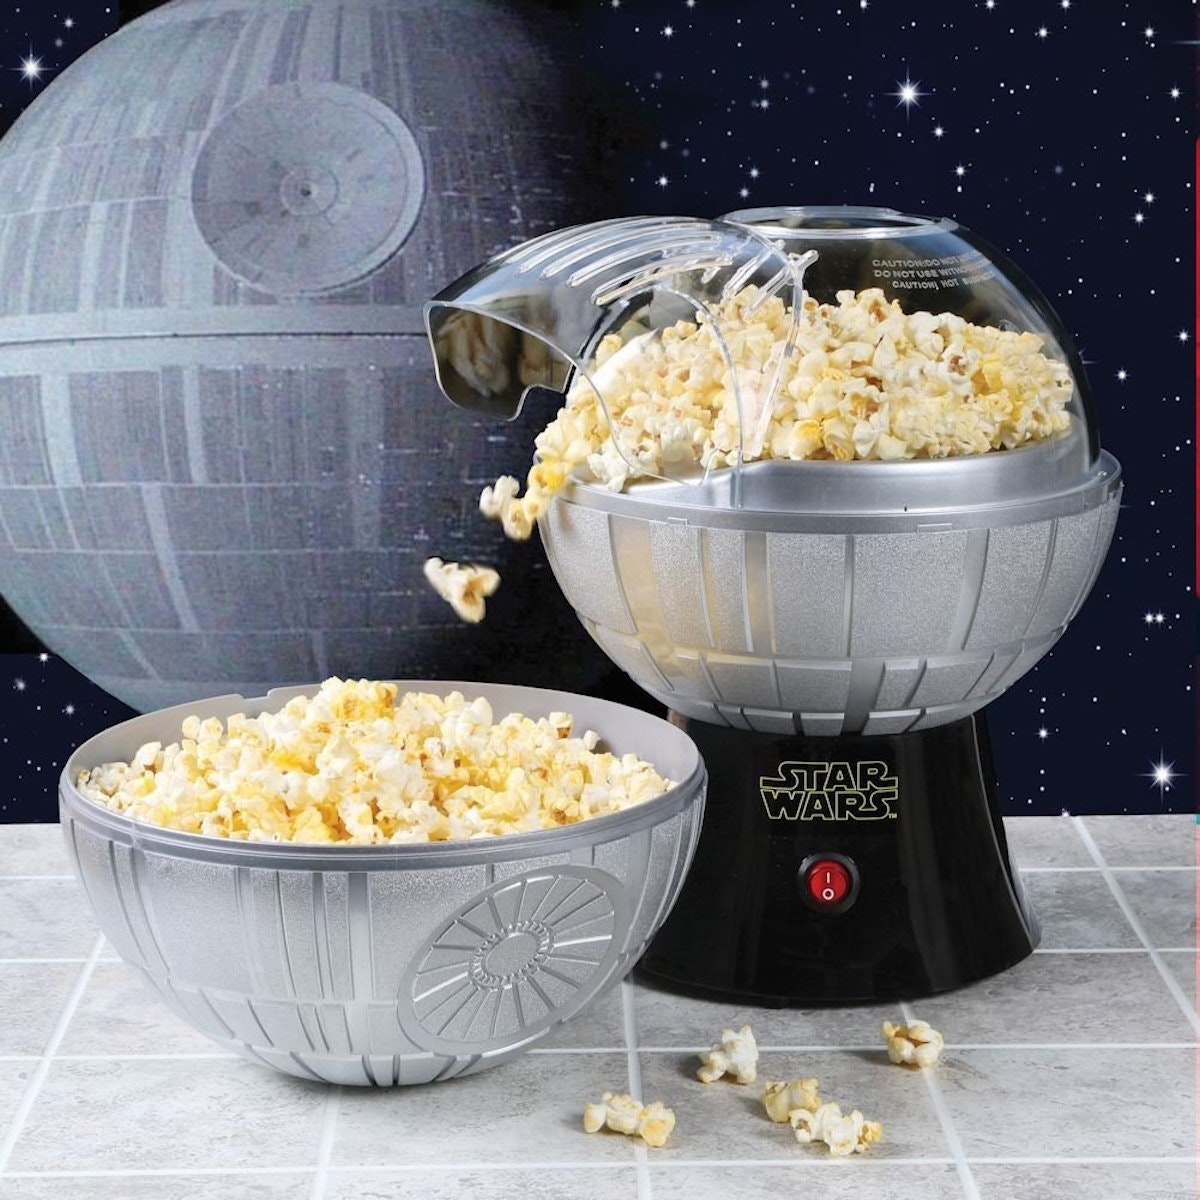 This Death Star popcorn maker